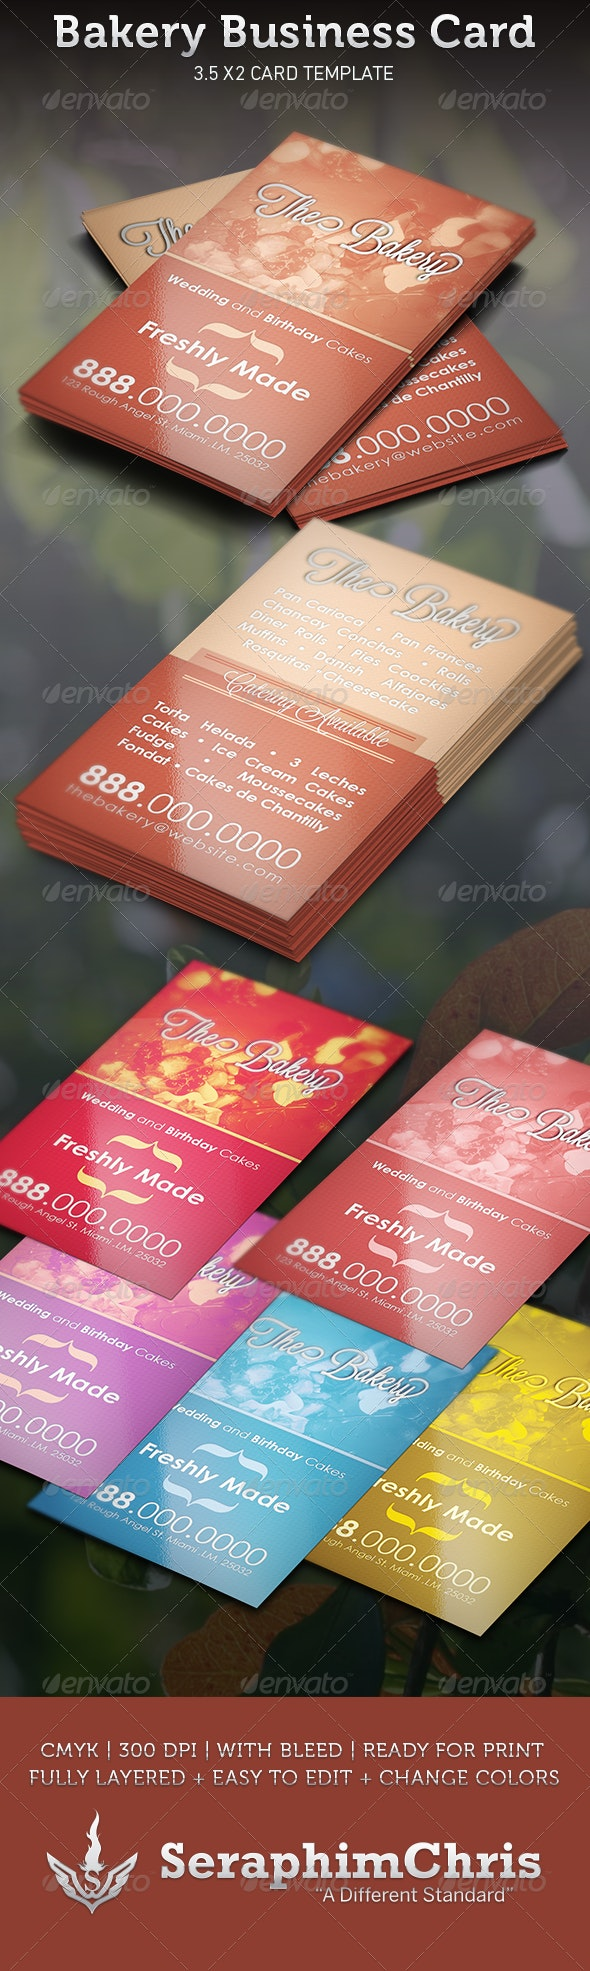 Bakery Business Card Template - Industry Specific Business Cards